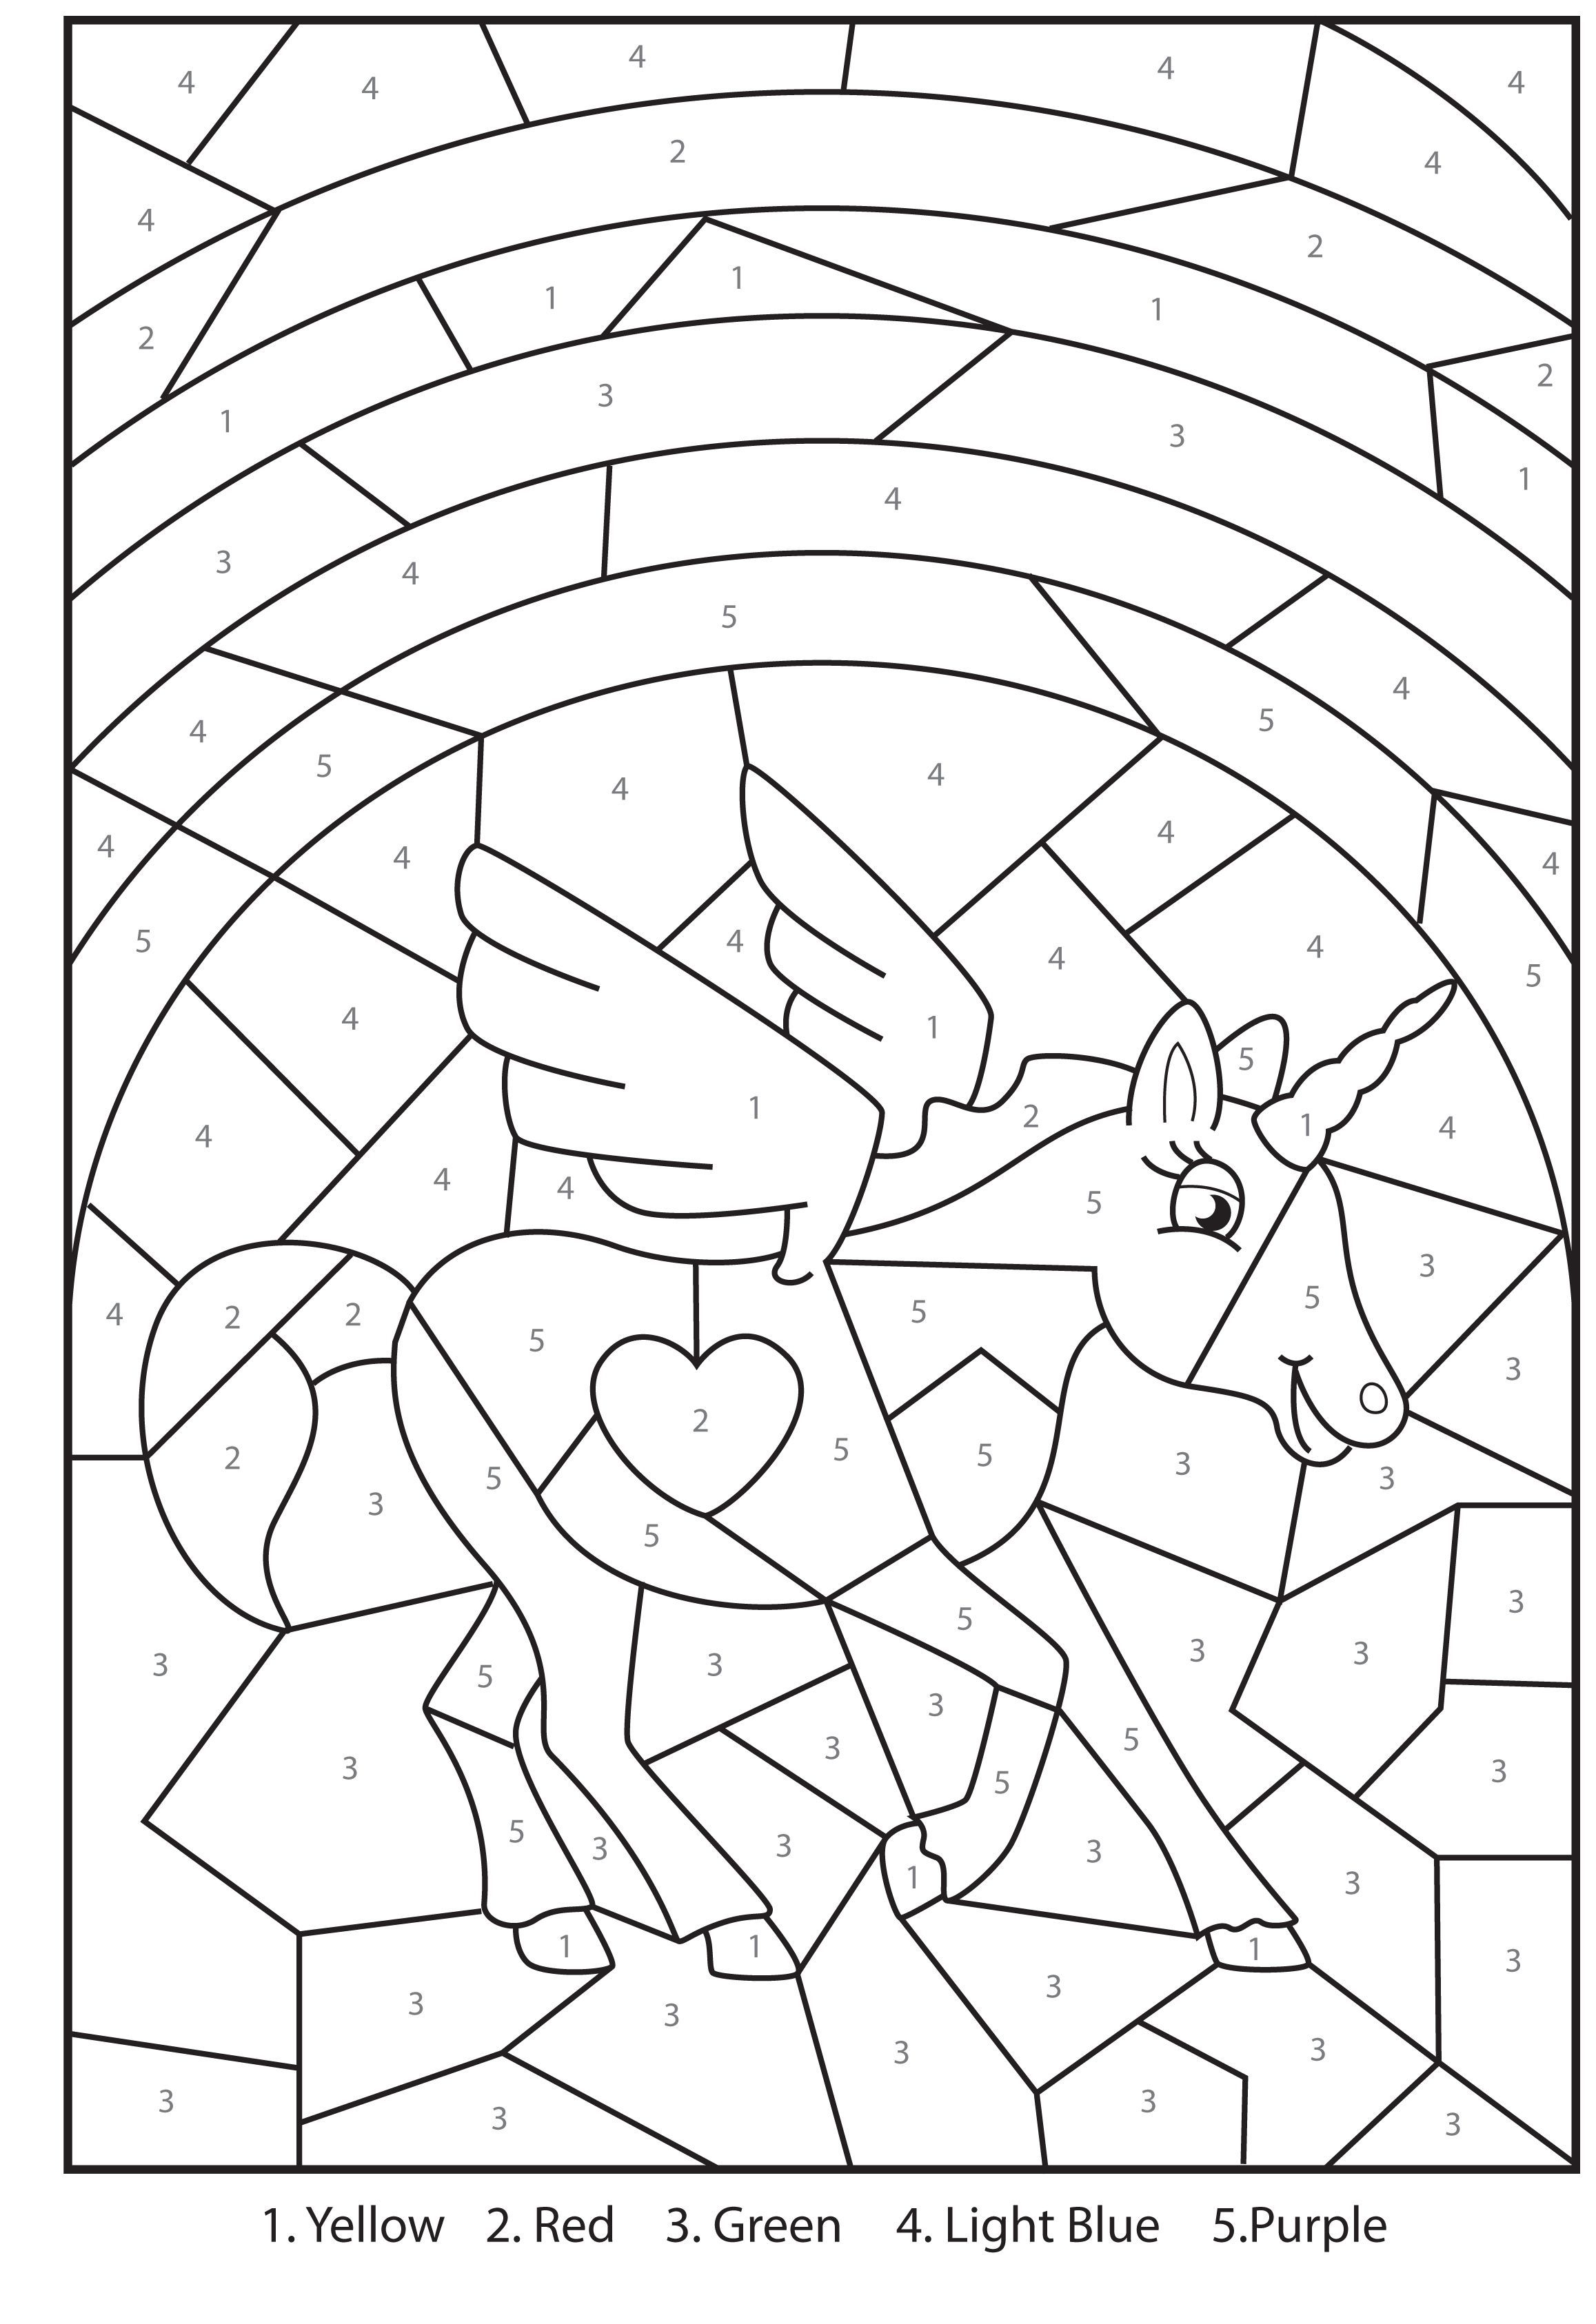 Unicorn Coloring Numbers Unicorn Coloring Number Game Unicorn Coloring Numbers Unicorn Coloring Pages Printables Free Kids Coloring Free Kids Coloring Pages